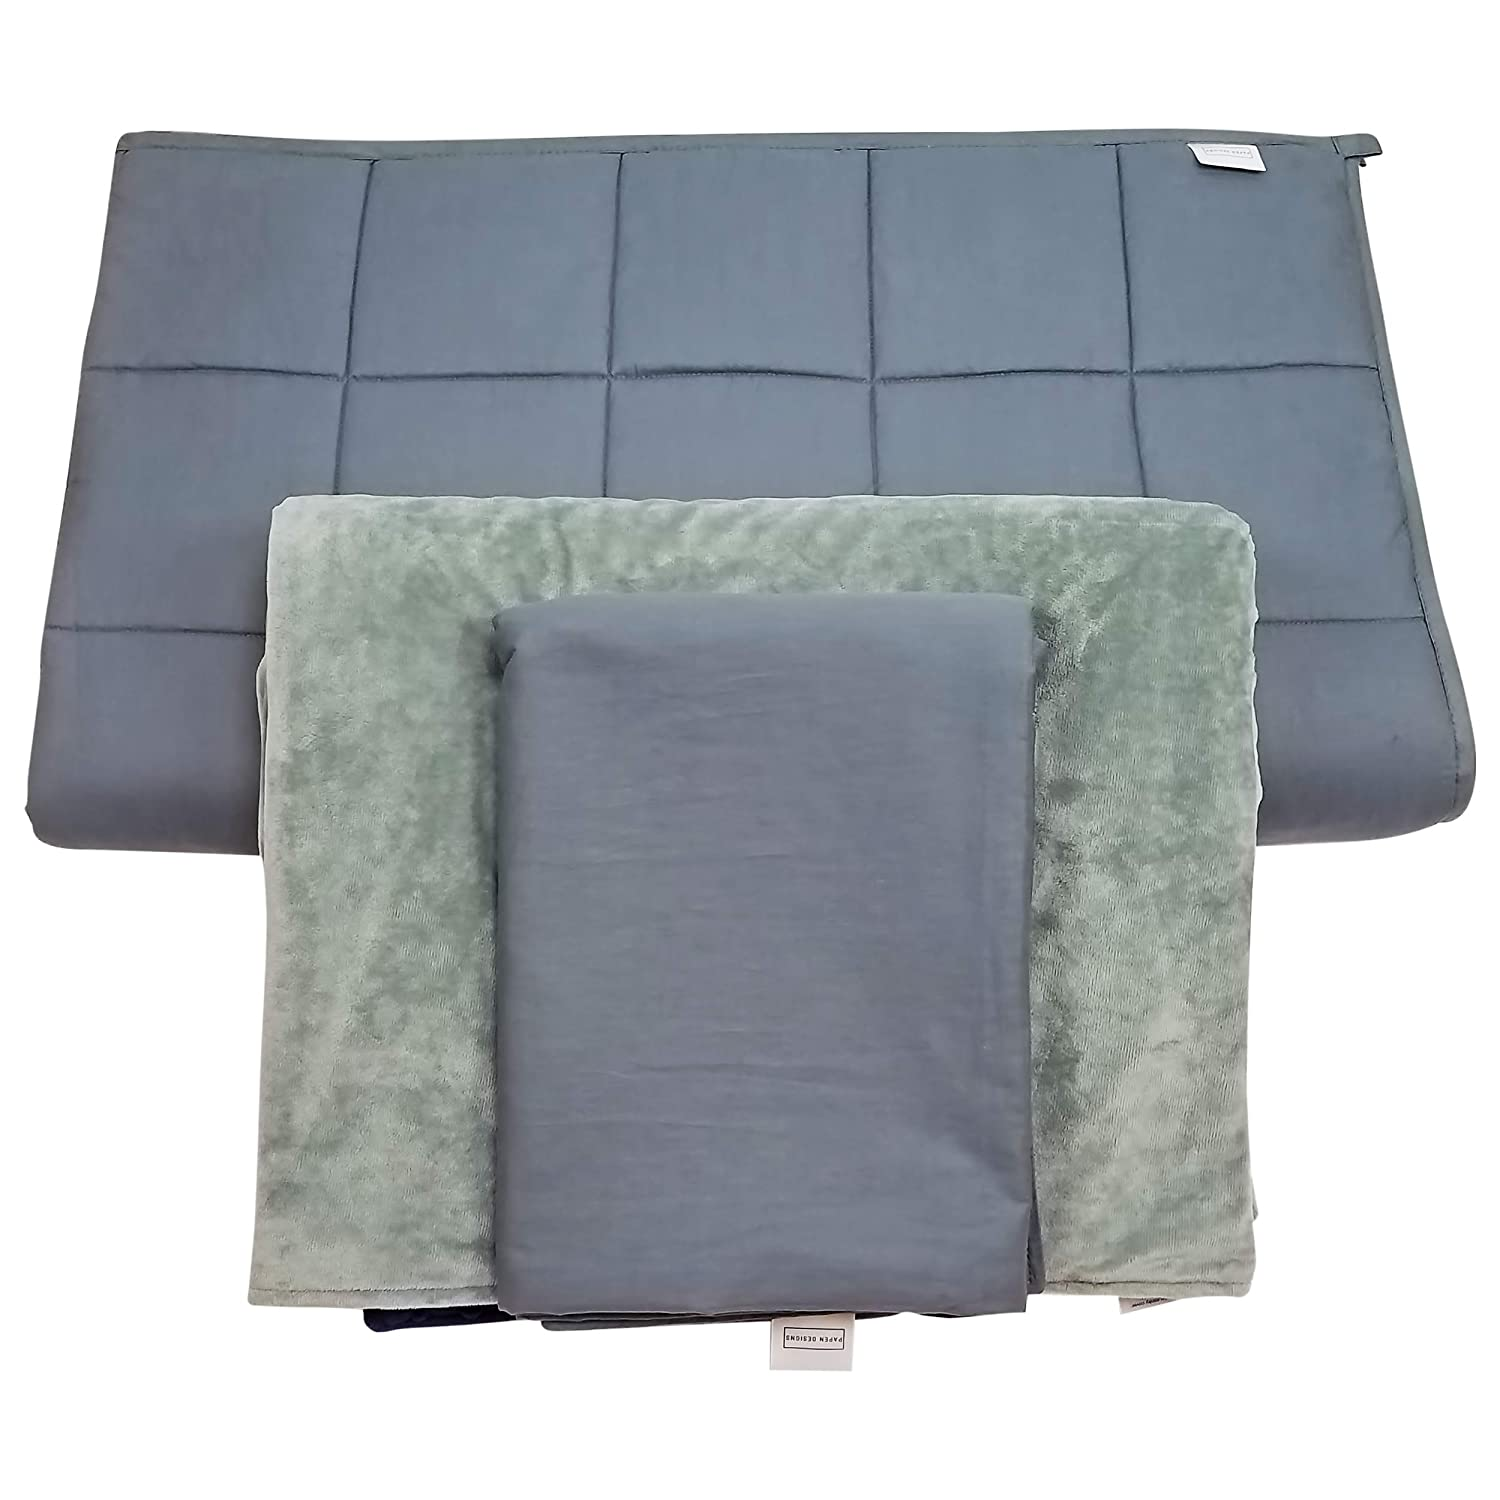 Papen Designs Adult Weighted Blanket with 2 Covers, 20lbs 60x80